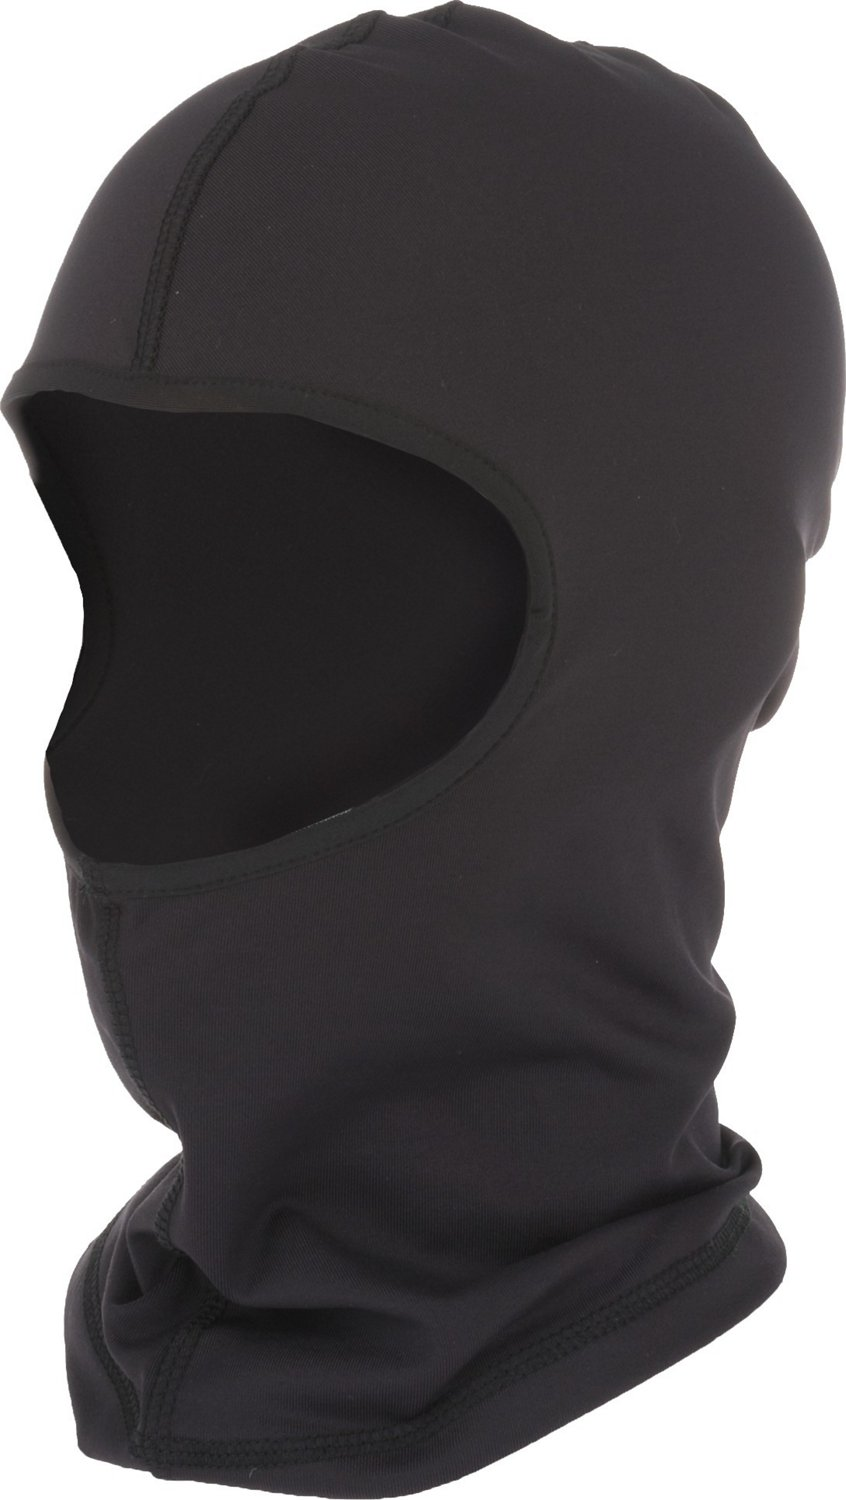 Blow Hole Open Mouth Spandex Hood With A Long Standing Reputation Health Care